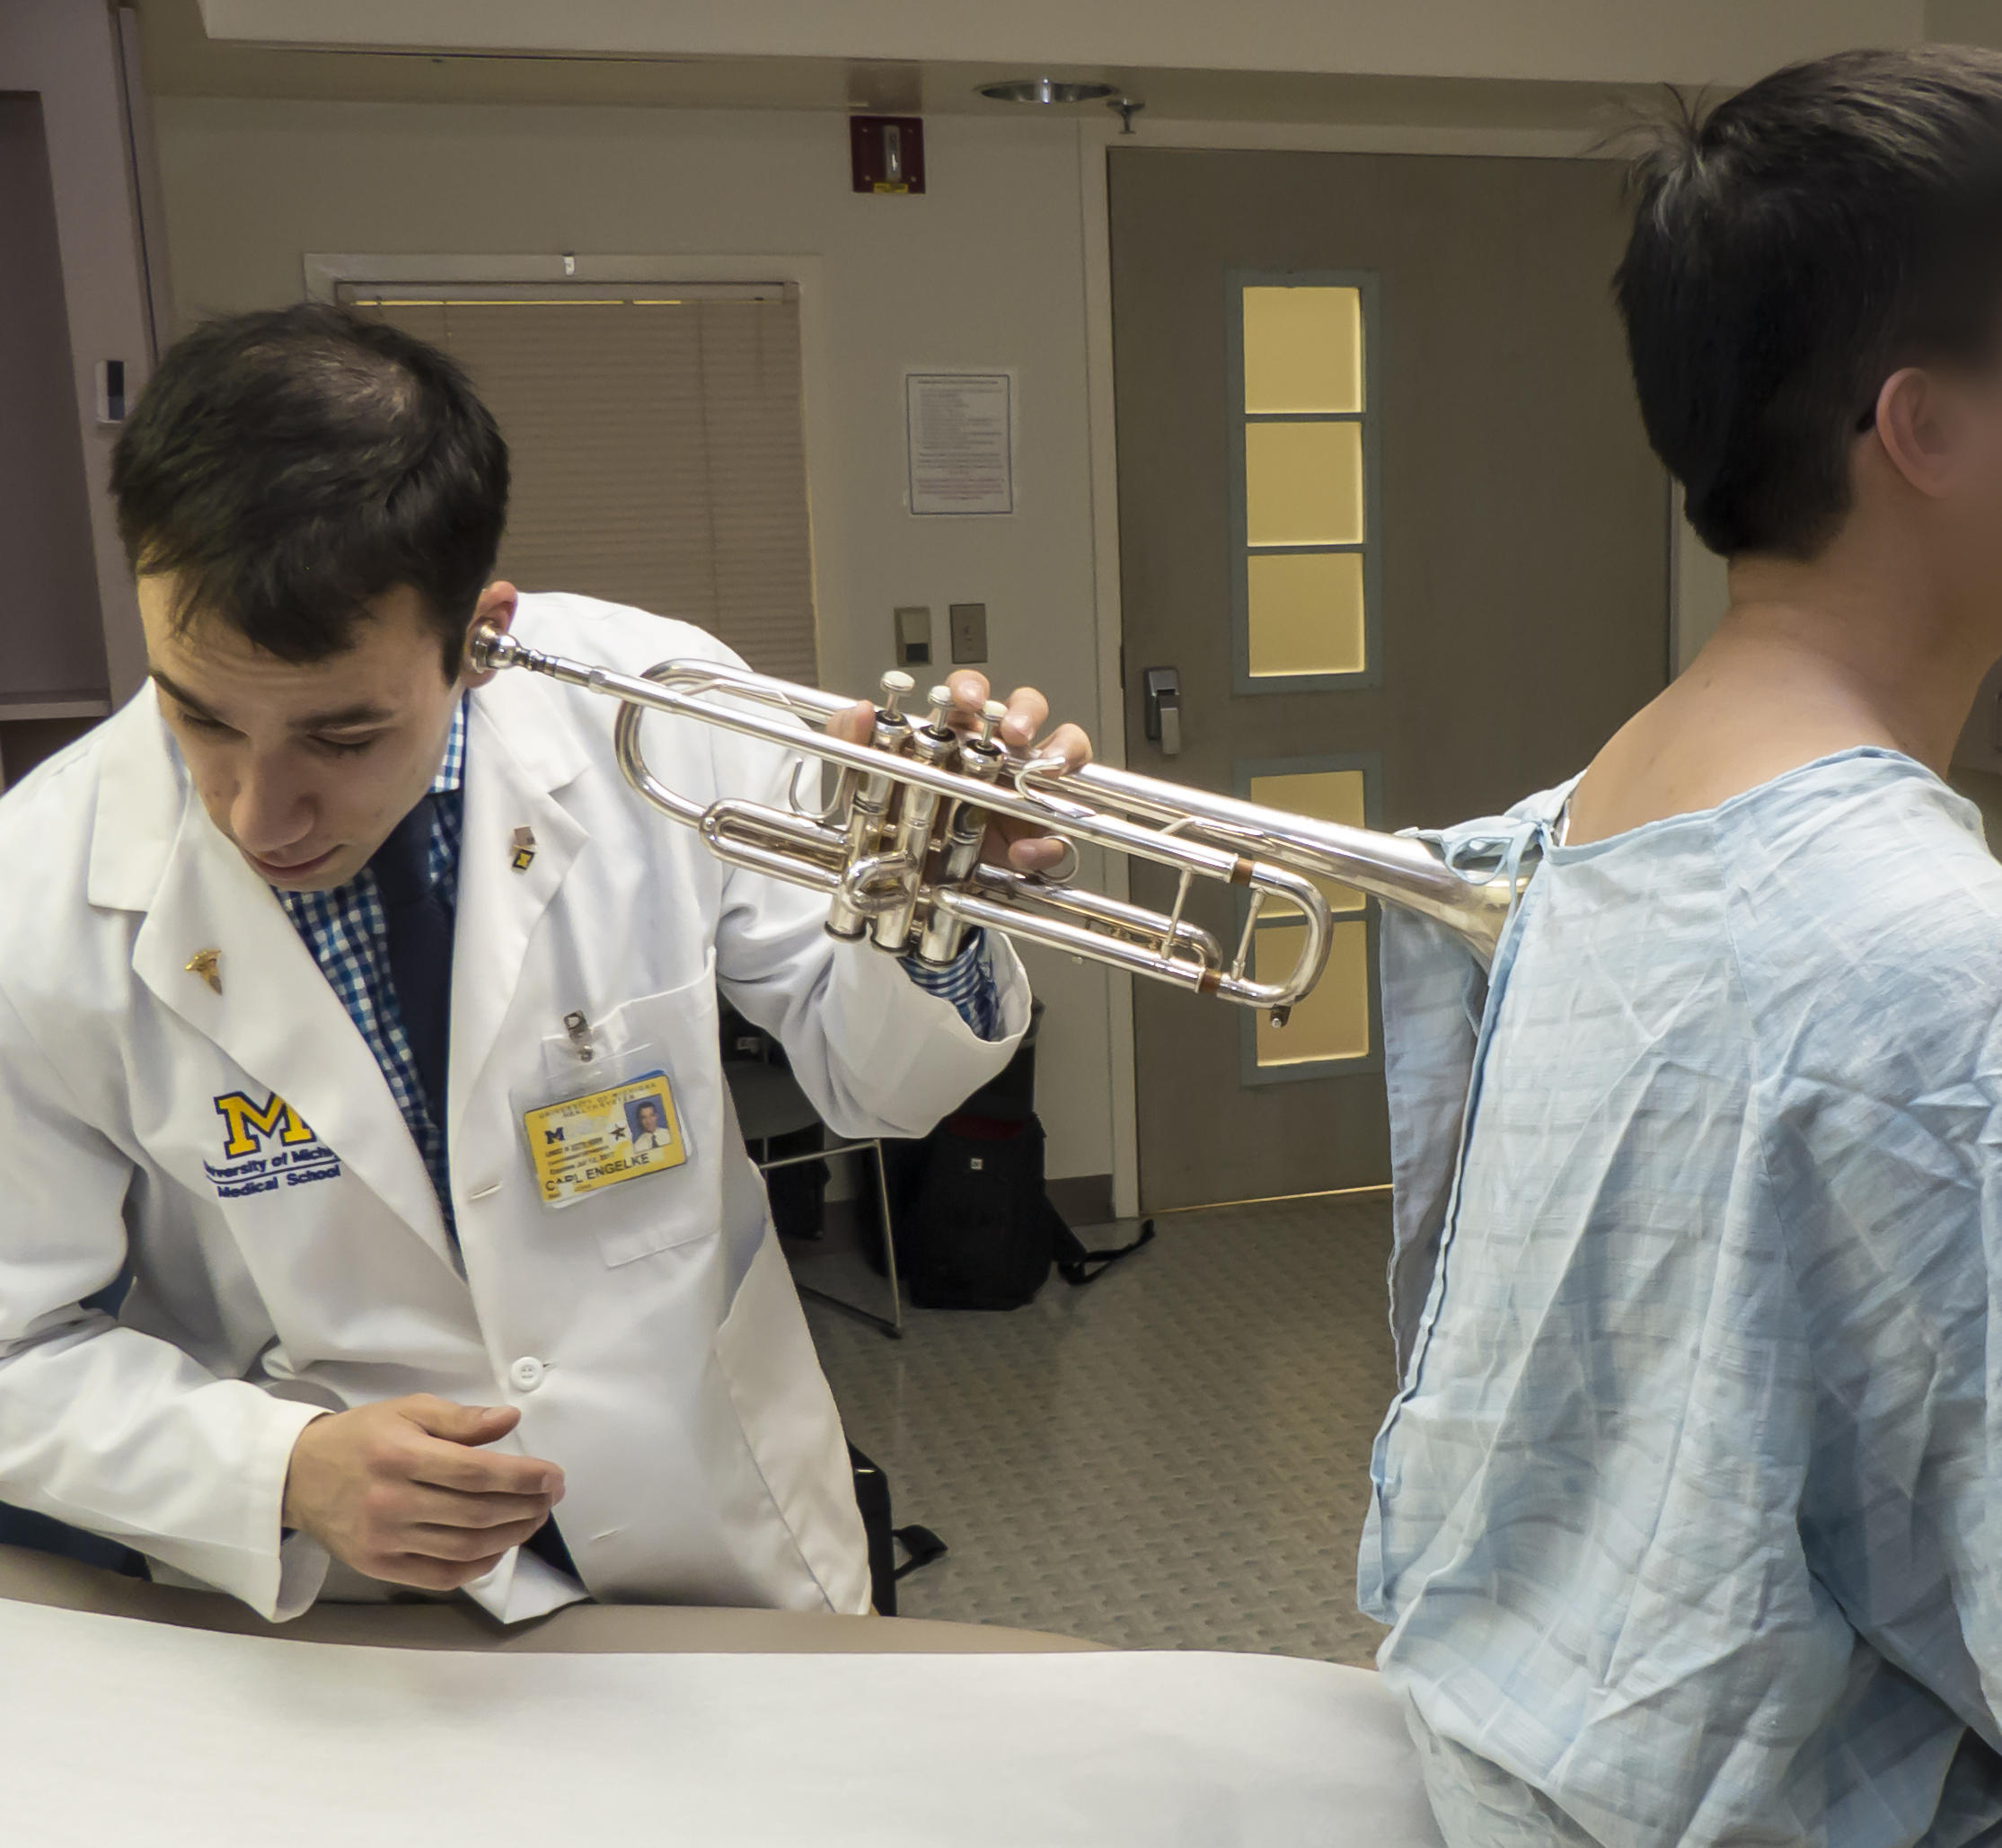 Ann Arbor Medical Musicians Operate With A Different Kind